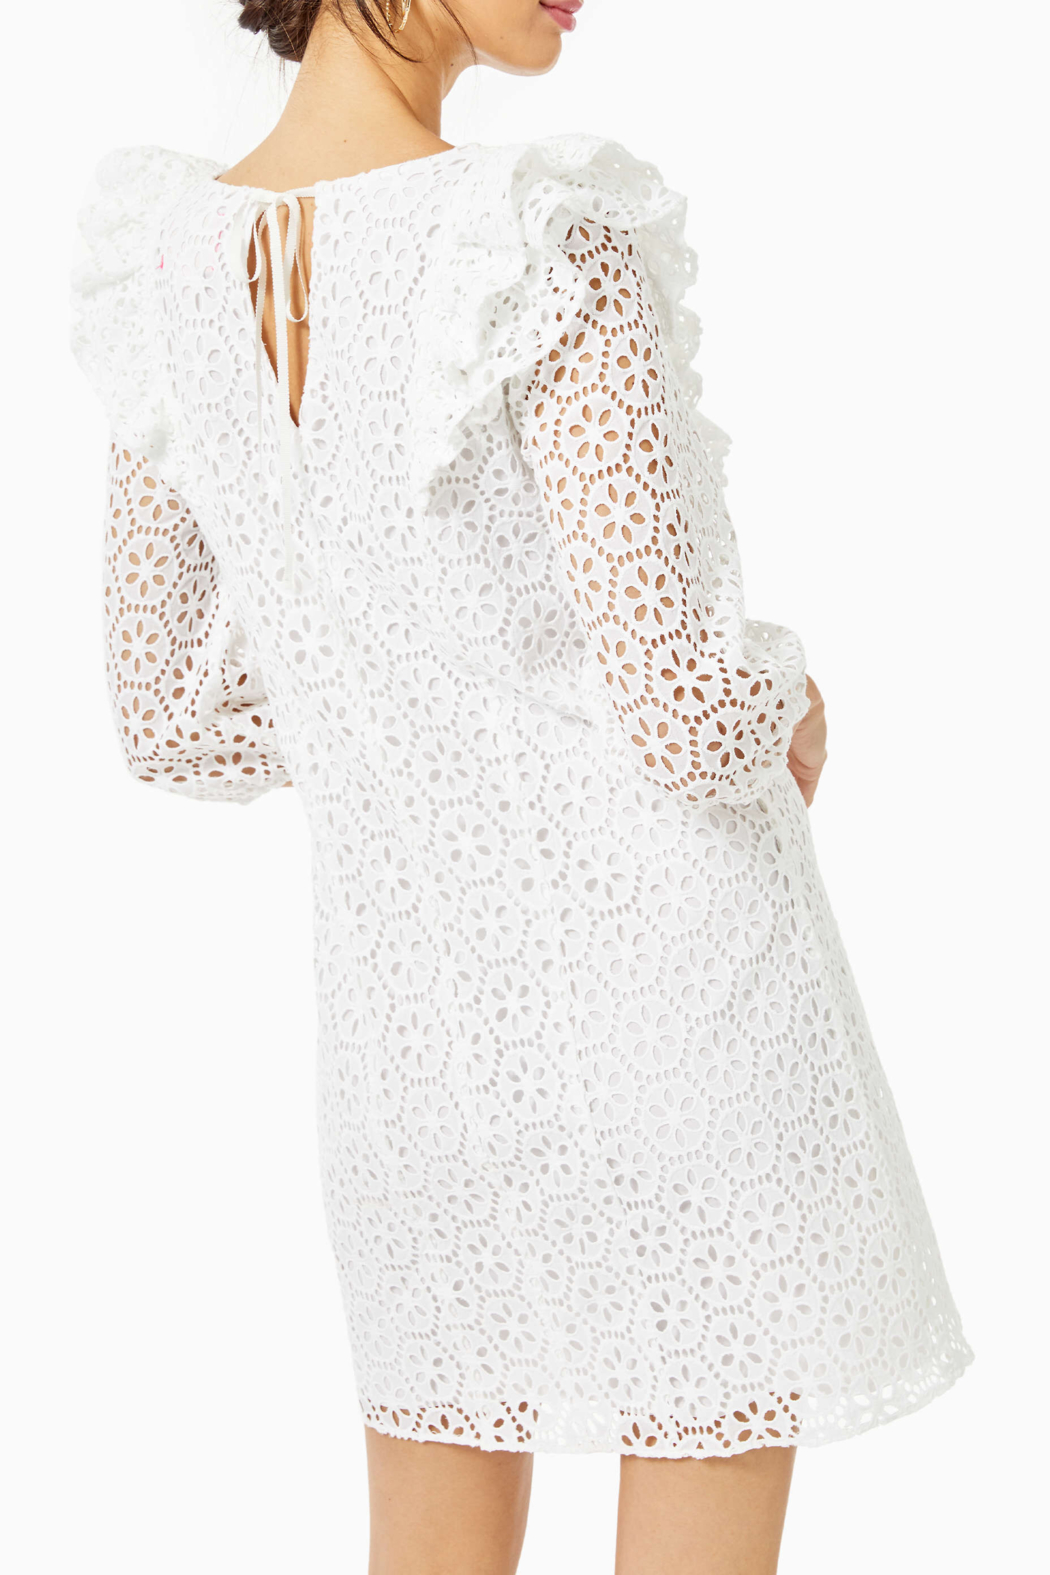 Lilly Pulitzer  Primm Eyelet Dress - Front Full Image